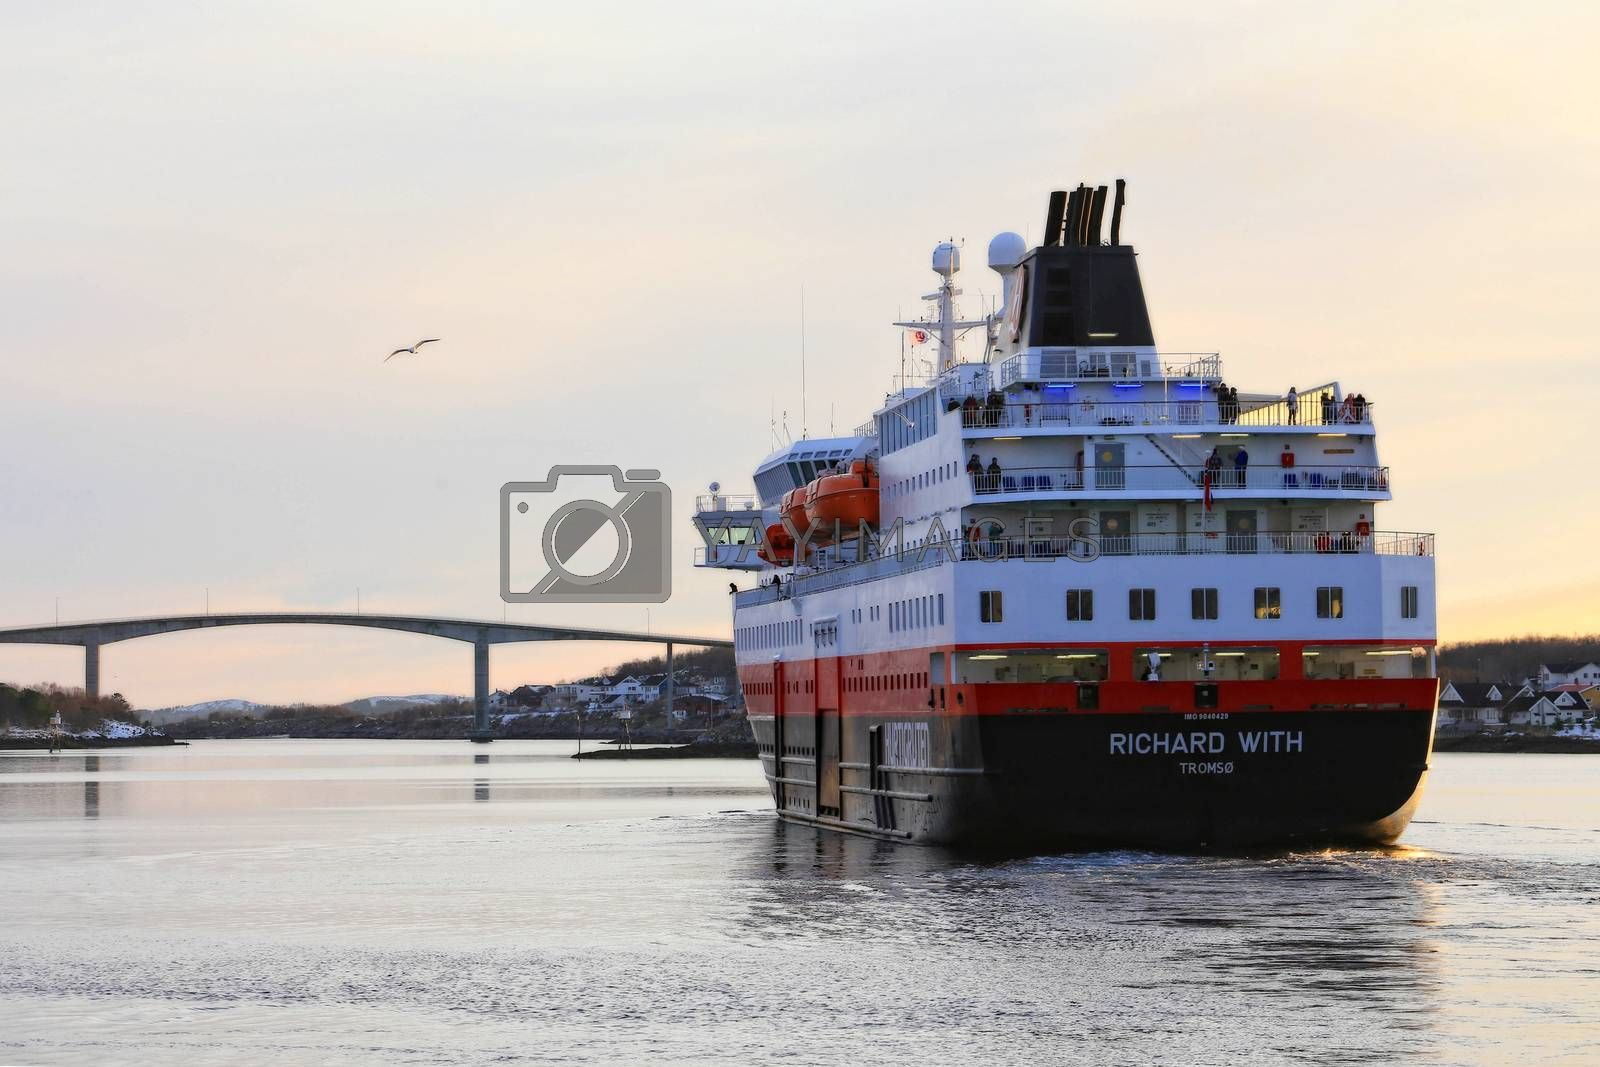 Royalty free image of M.s Richard With by post@bronn.no